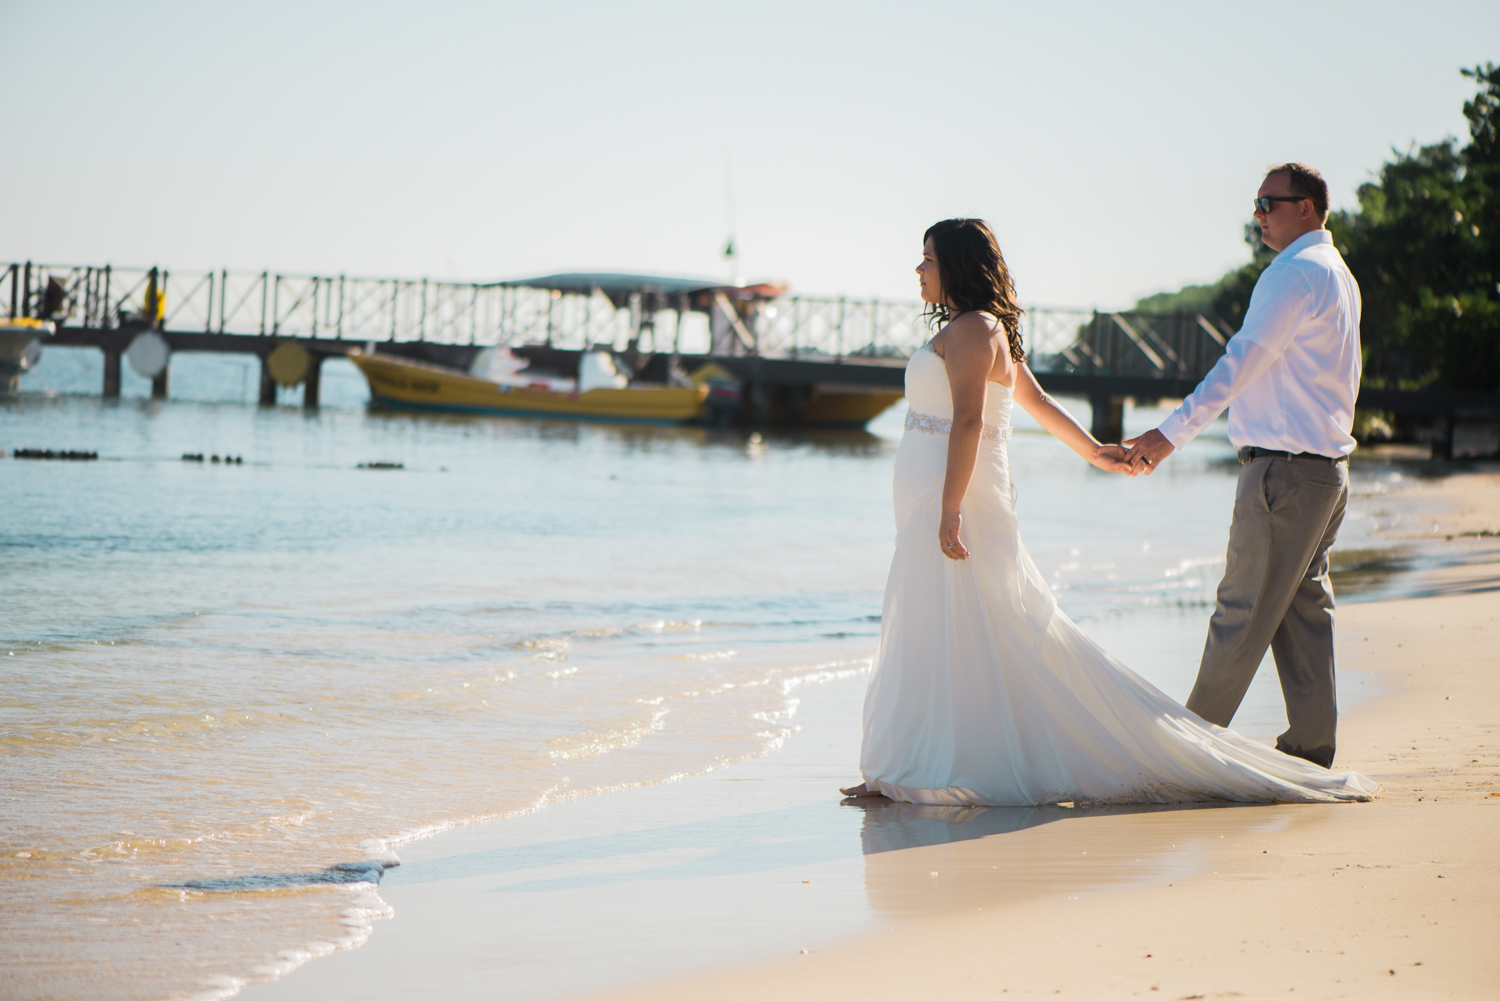 JadeandRyan-Montego-Bay-Jamaica-Wedding-Iberostar-Resort-Beach-87.jpg